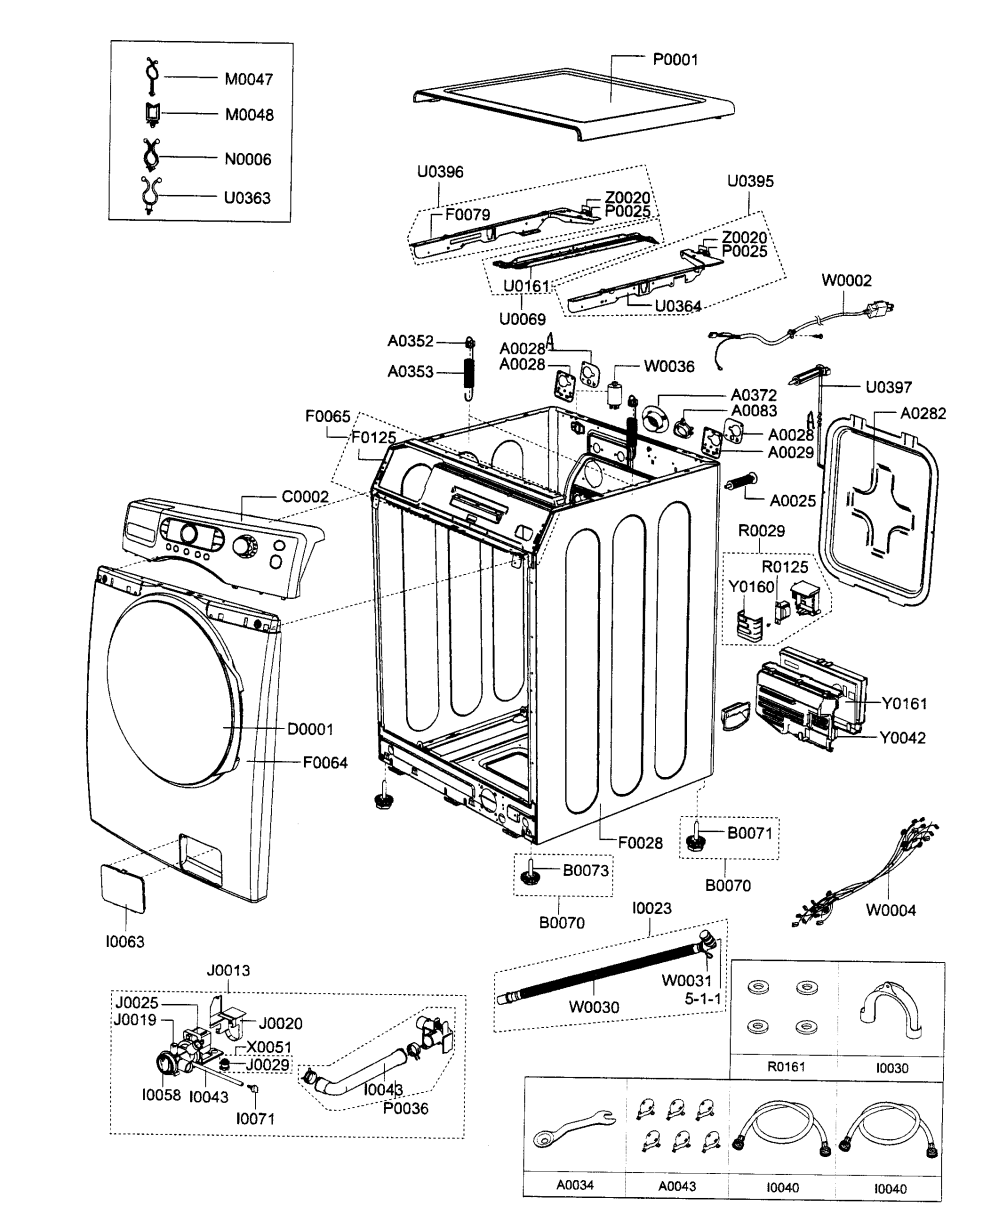 medium resolution of wiring diagram for samsung washer electrical wiring diagrams frigidaire washer parts diagram samsung washer diagram